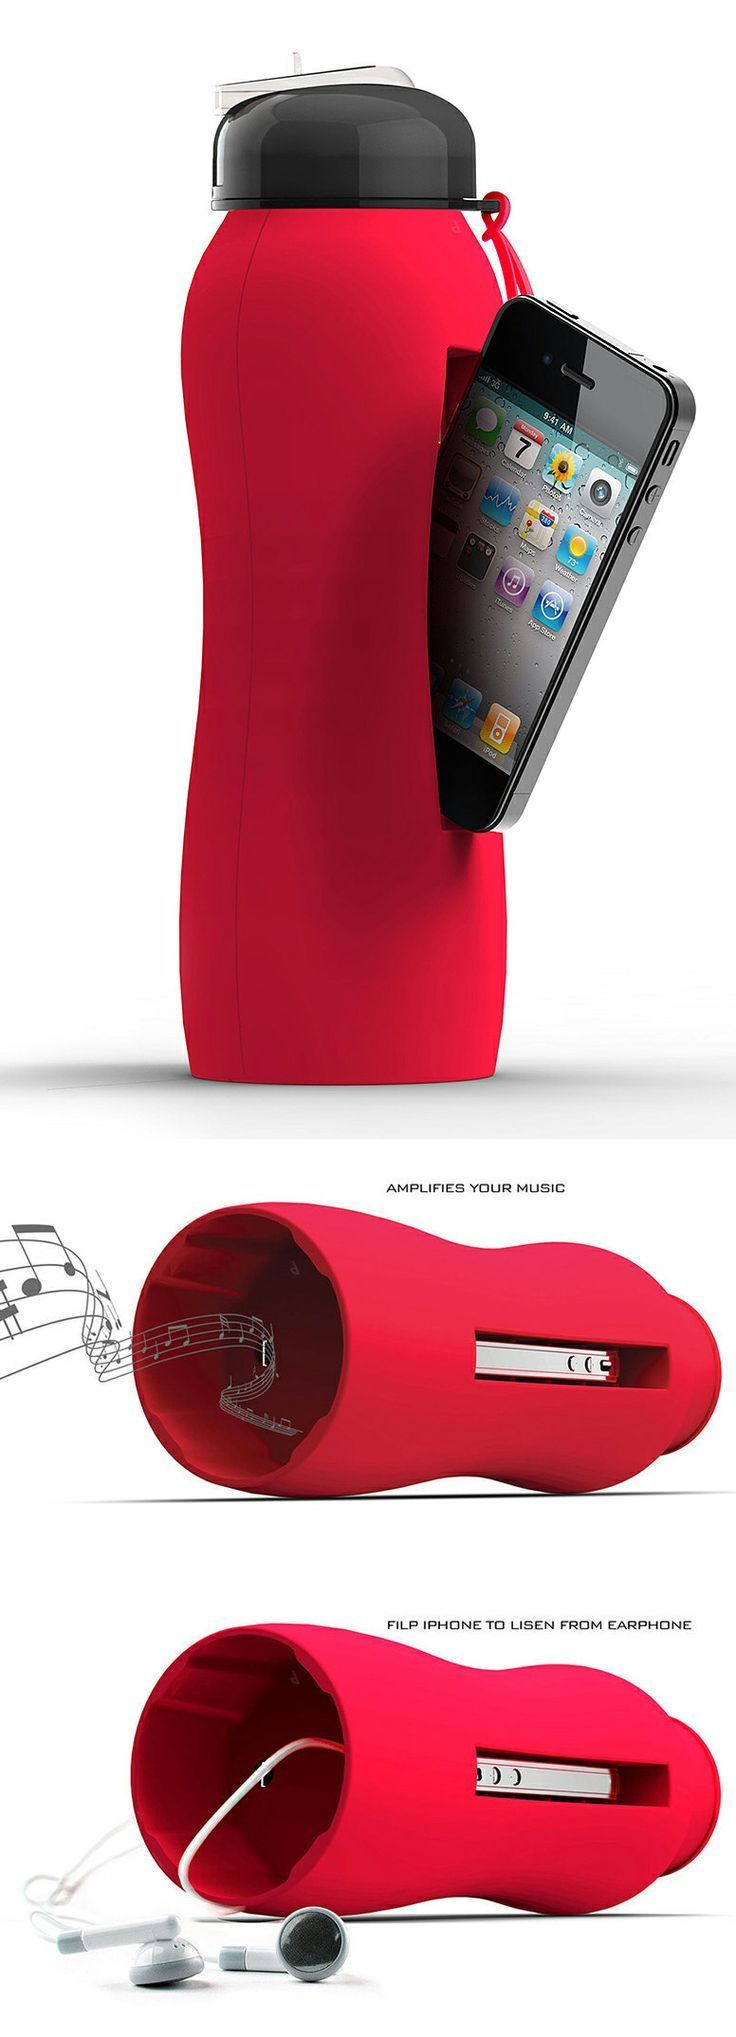 3224 best cool tech and gadgets images on pinterest cool Cool tech gadgets for christmas